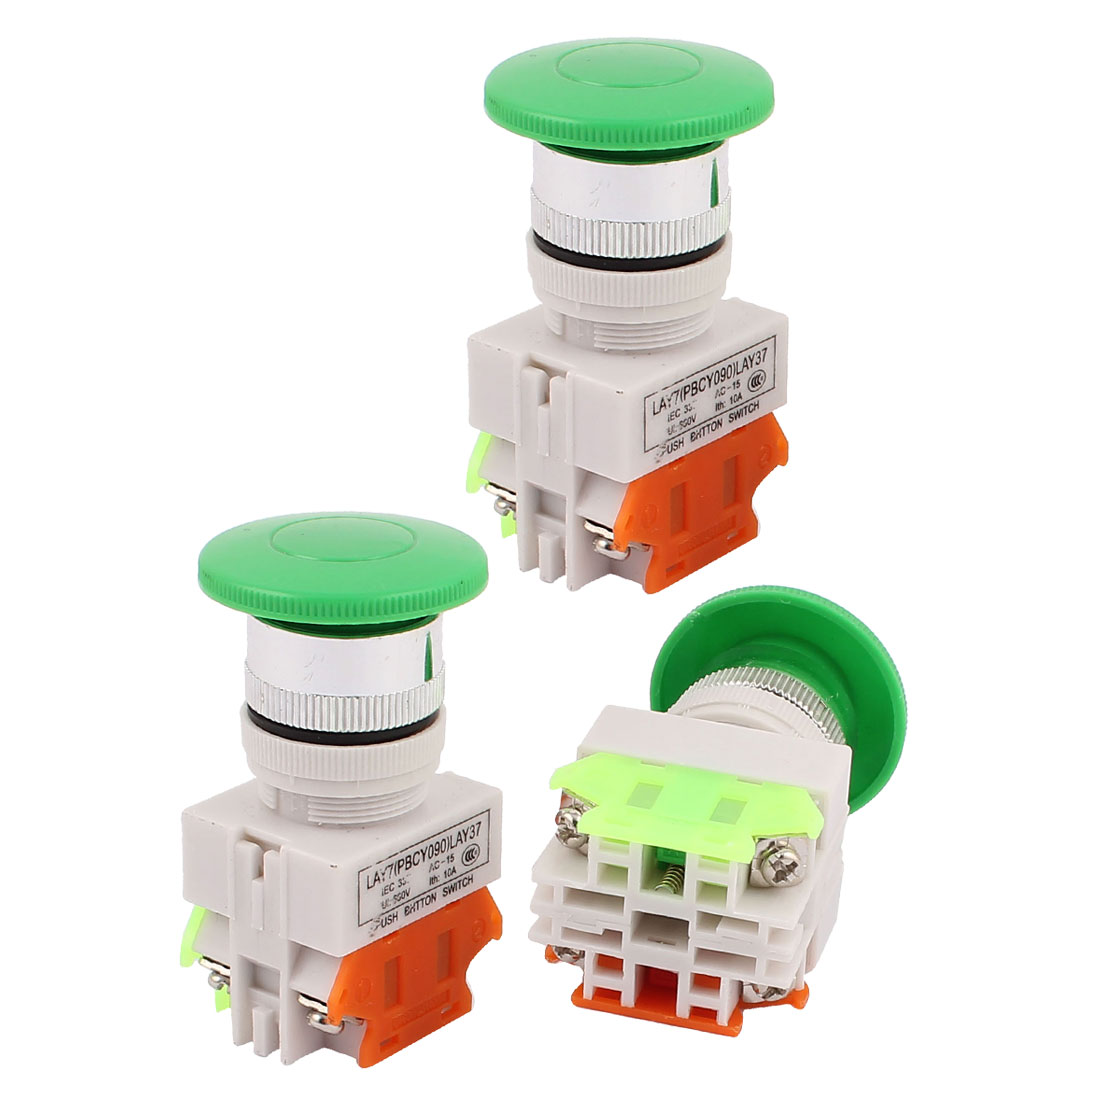 3PCS AC 600V 10A Momentary Emergency Stop Green Mushroom Push Switch